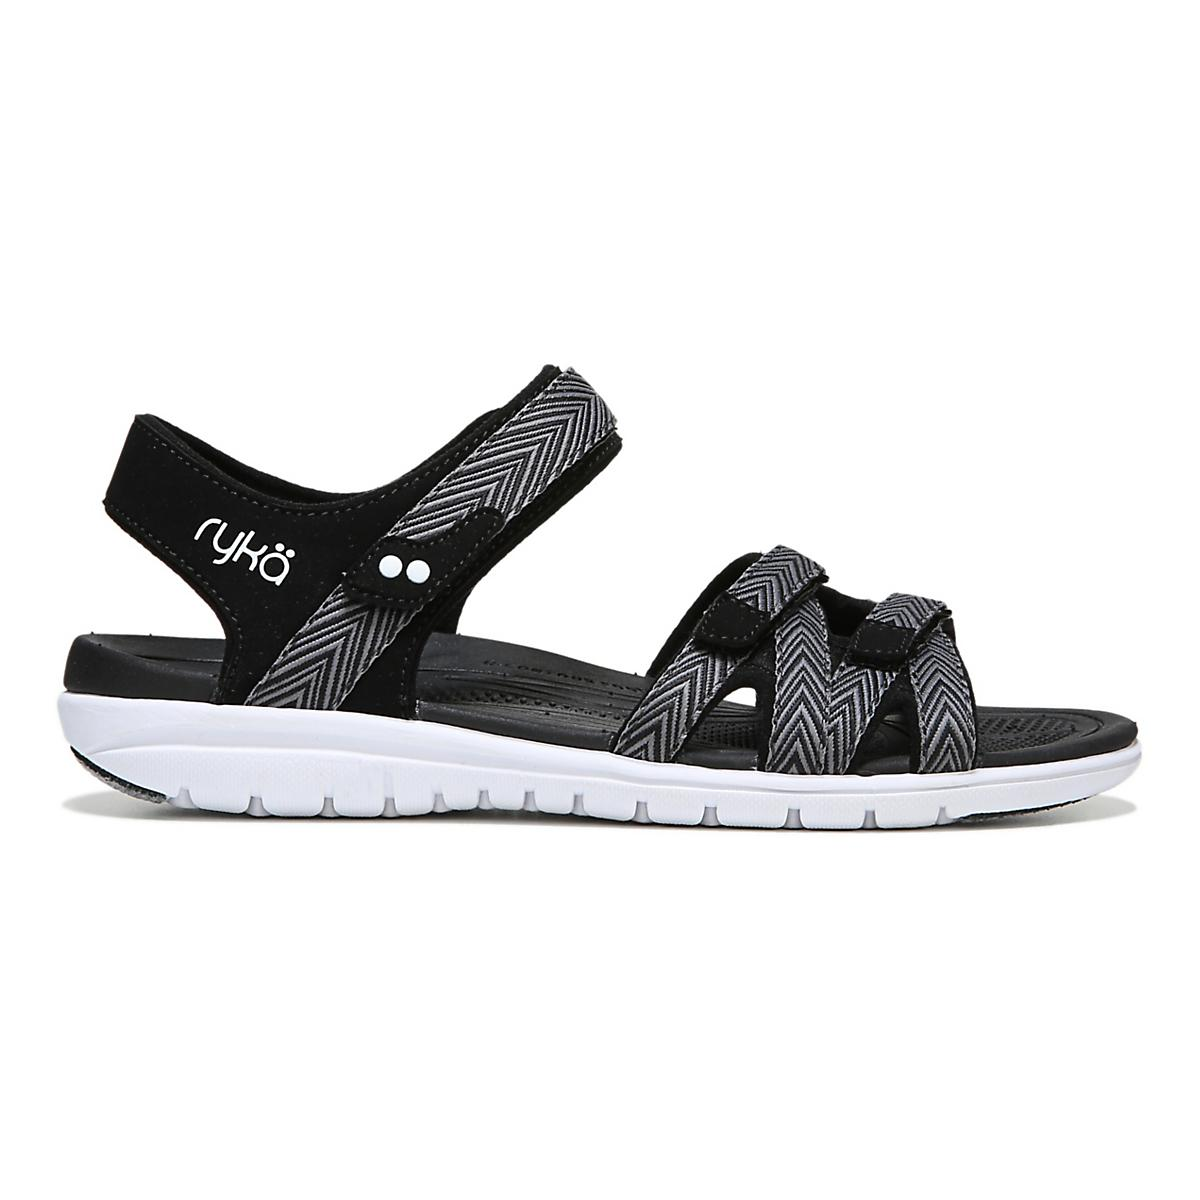 a252482f9 Womens Ryka Savannah Sandals Shoe at Road Runner Sports